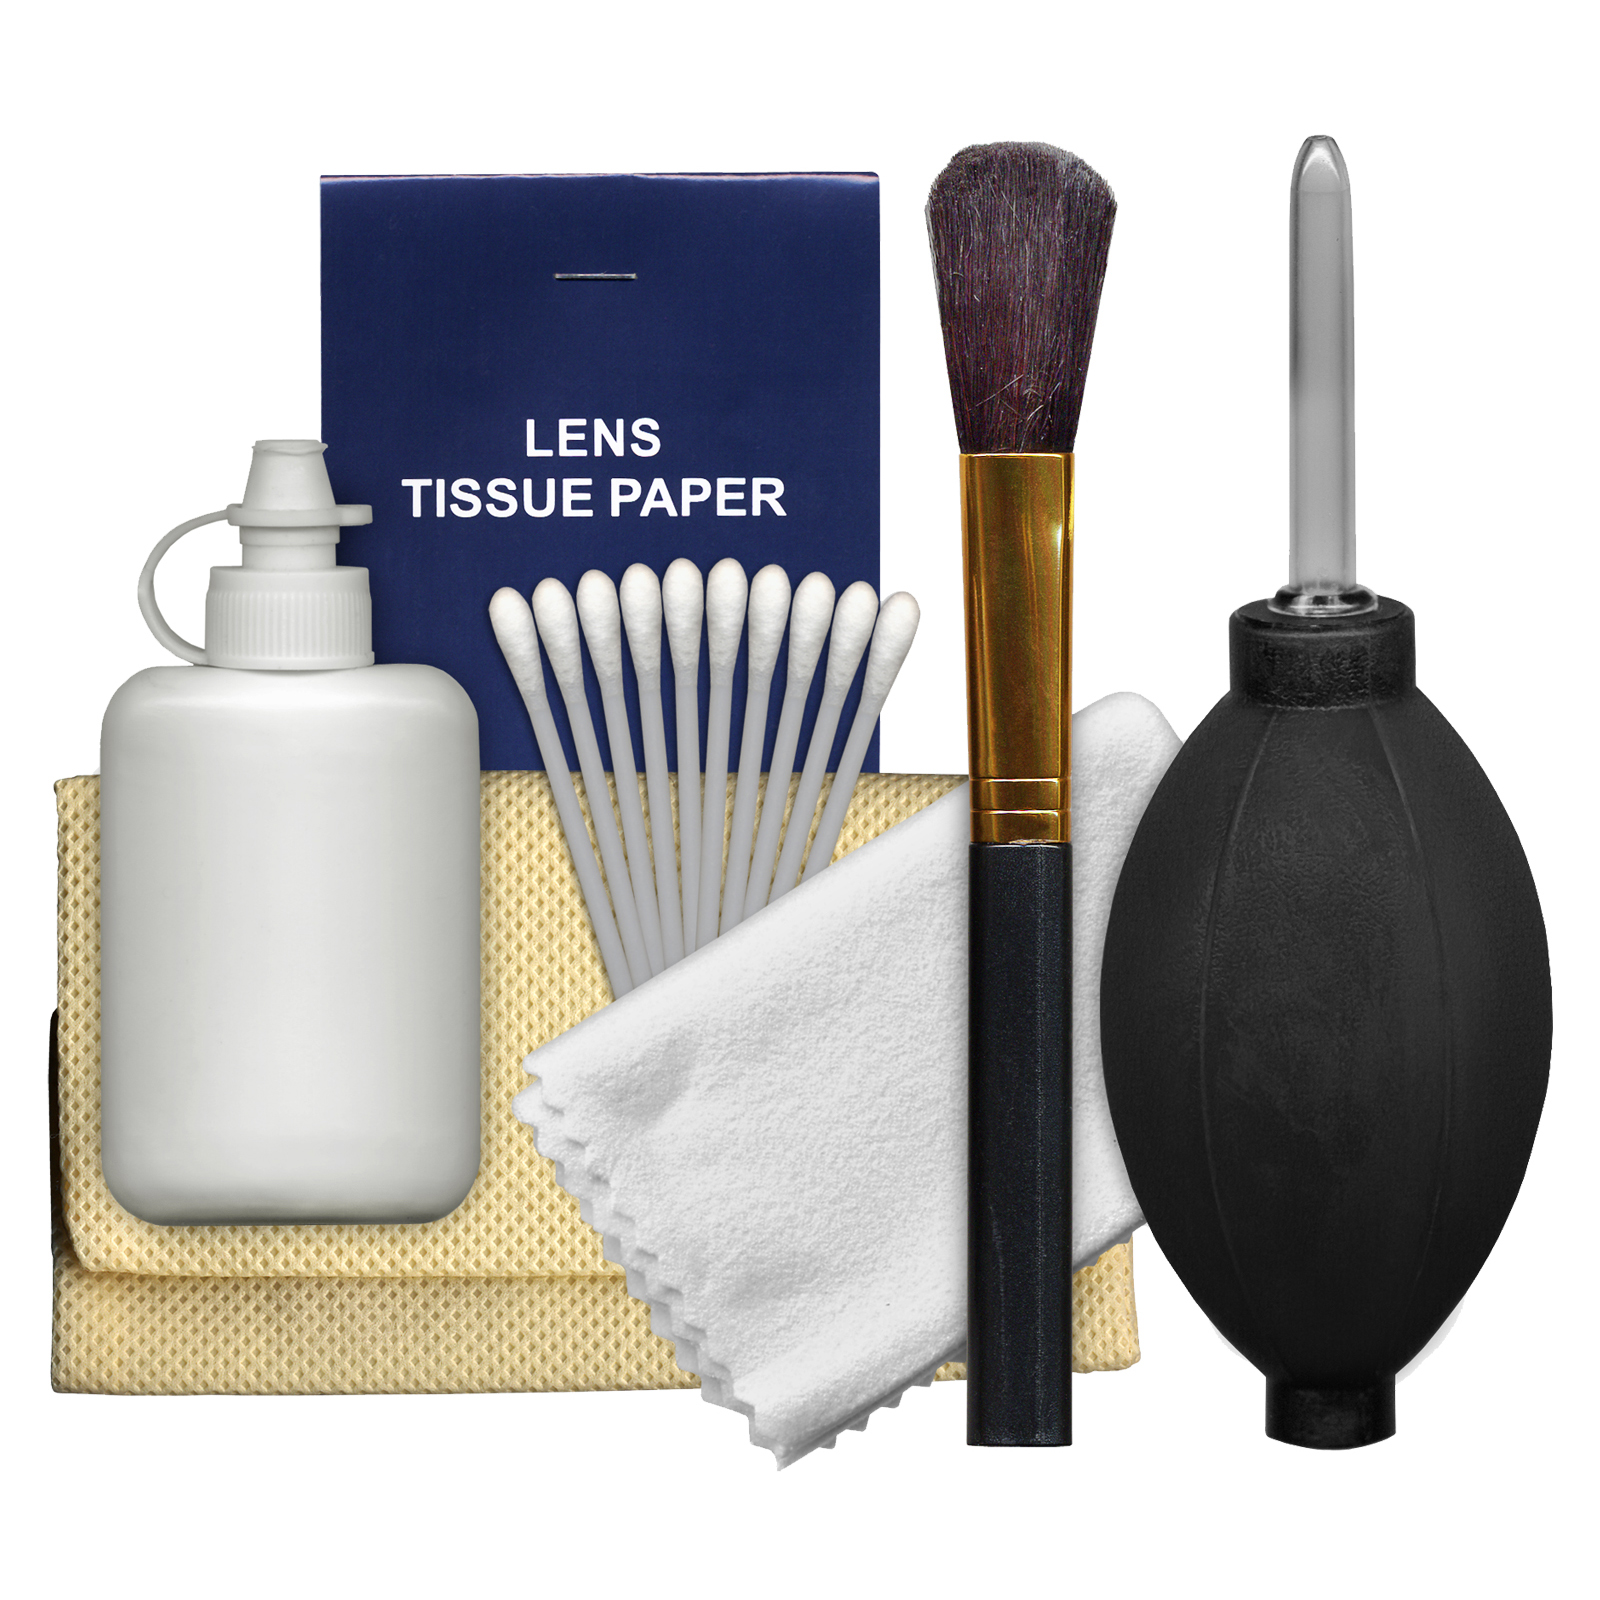 Precision Design 6-Piece Camera & Lens Cleaning Kit with Blower, Brush, Fluid, Cloth, Tissues & Tips